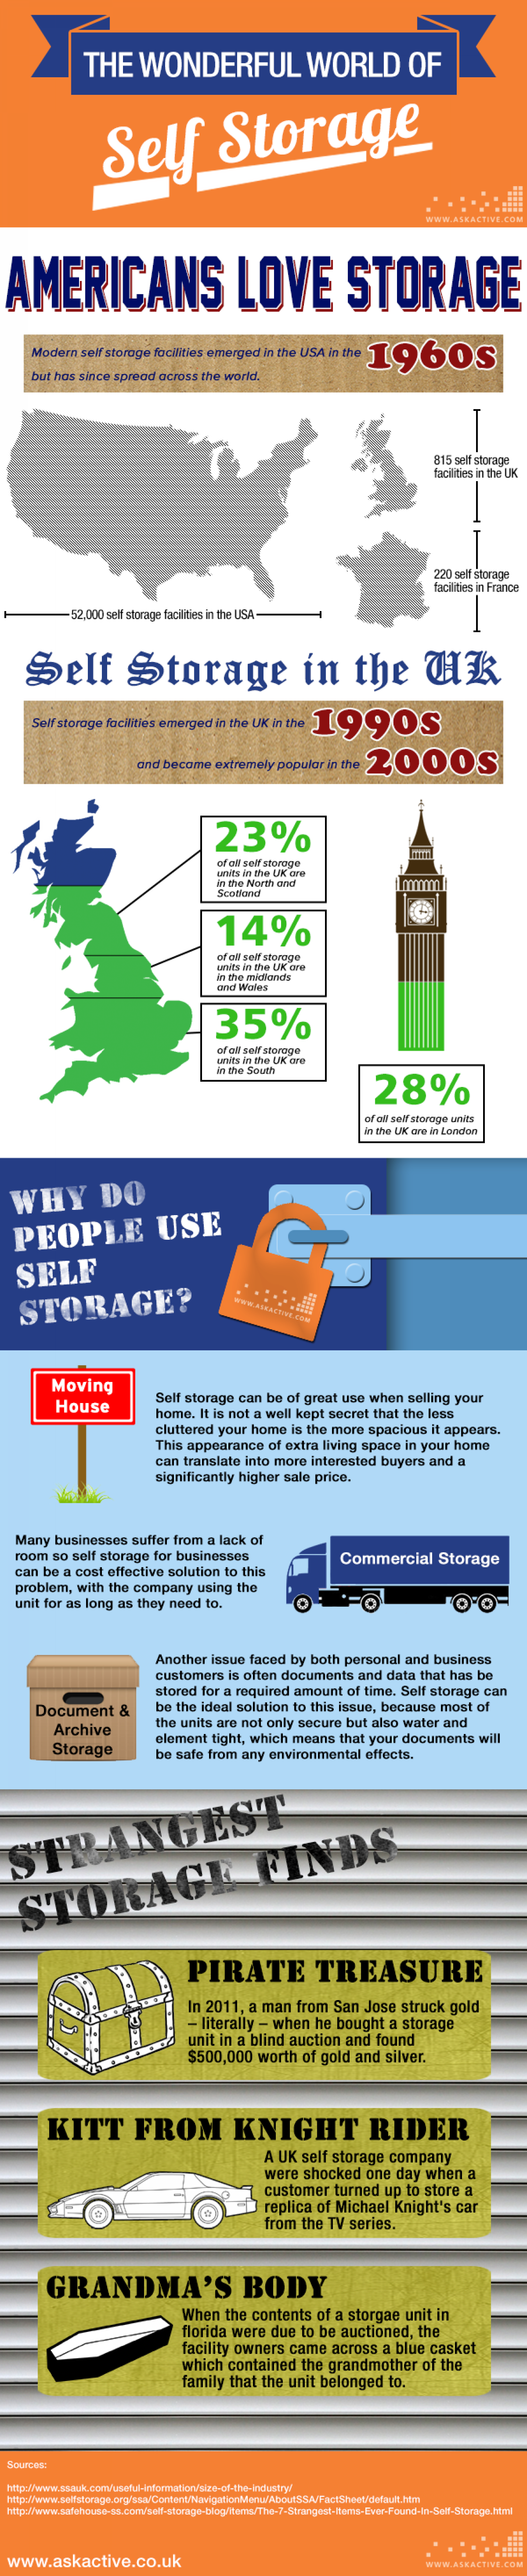 The Wonderful world of Self Storage Infographic